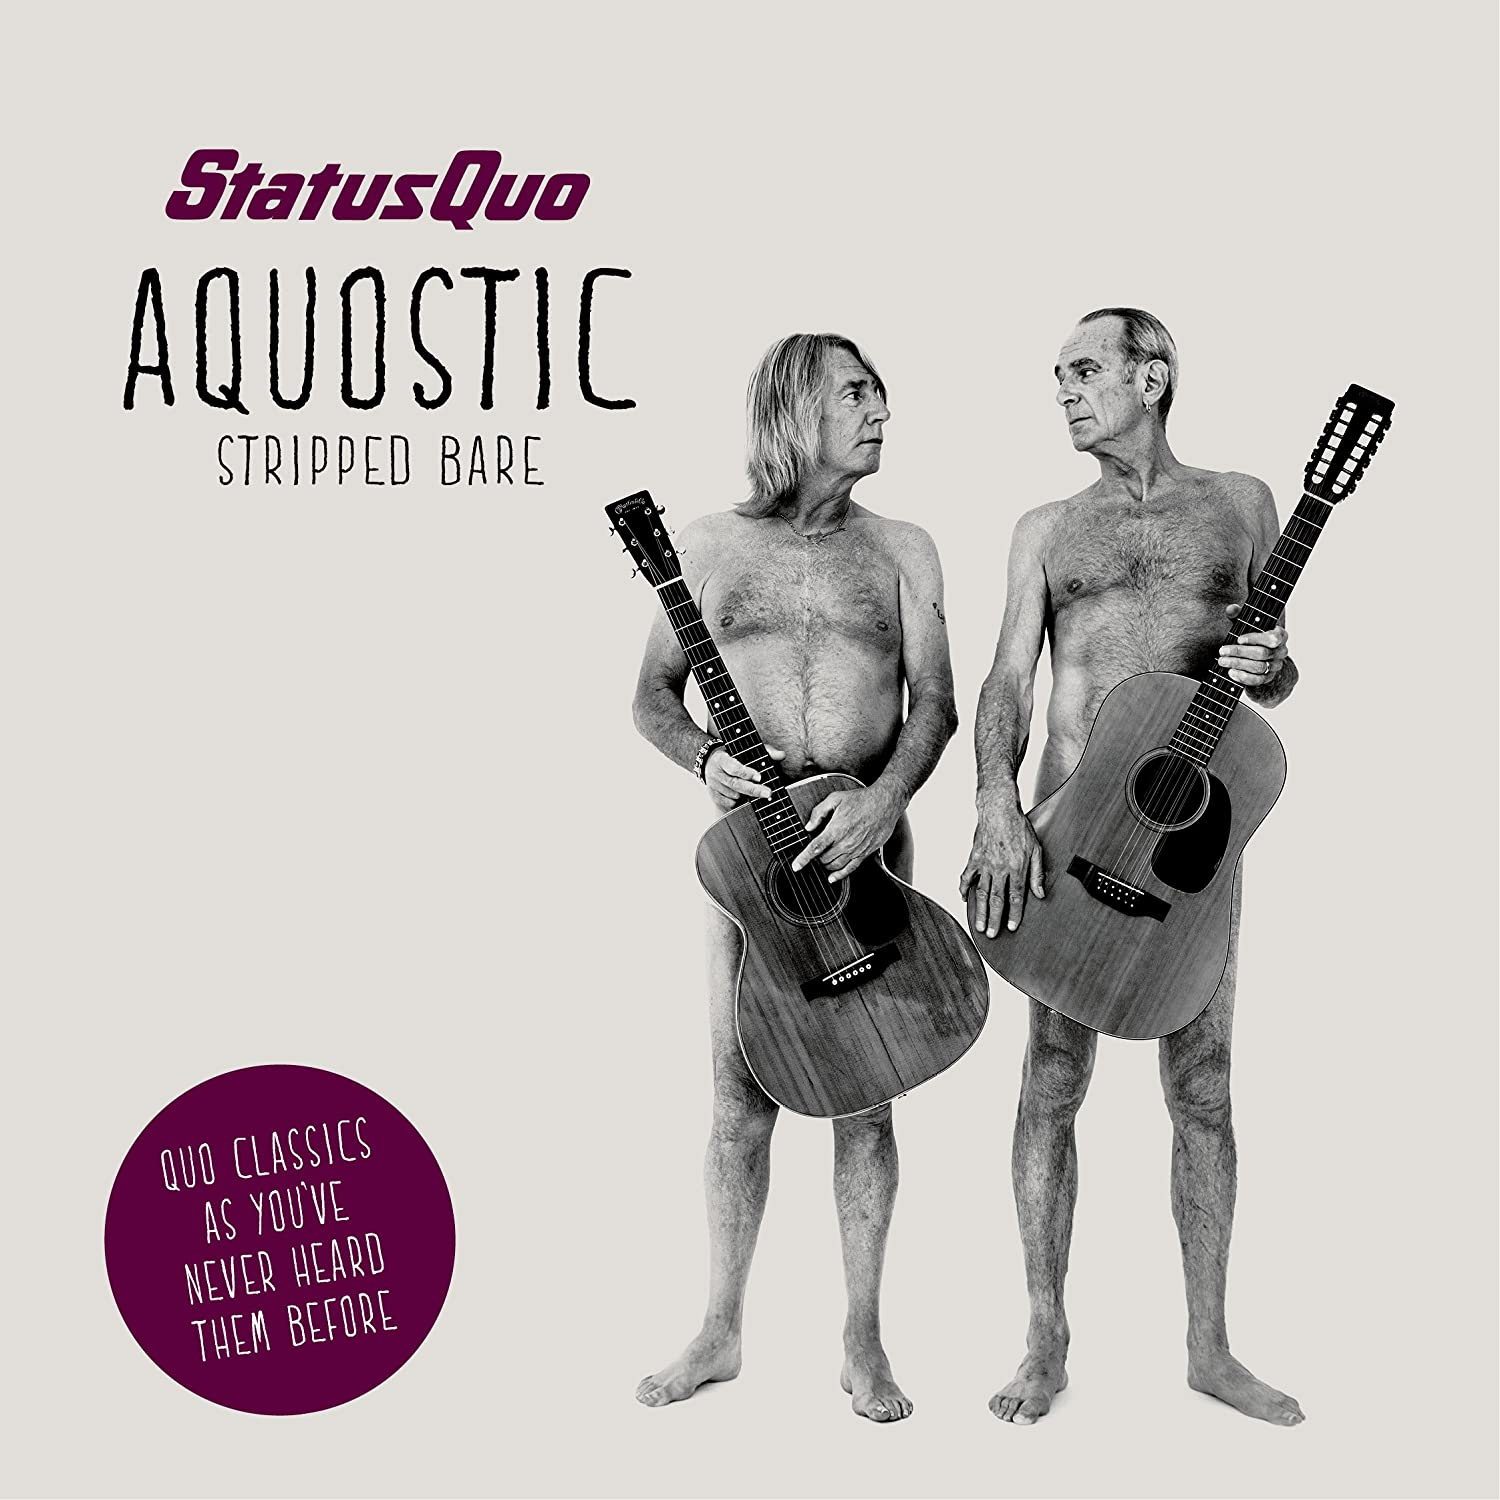 Status Quo - Aqoustic (Stripped Bare) (2014)